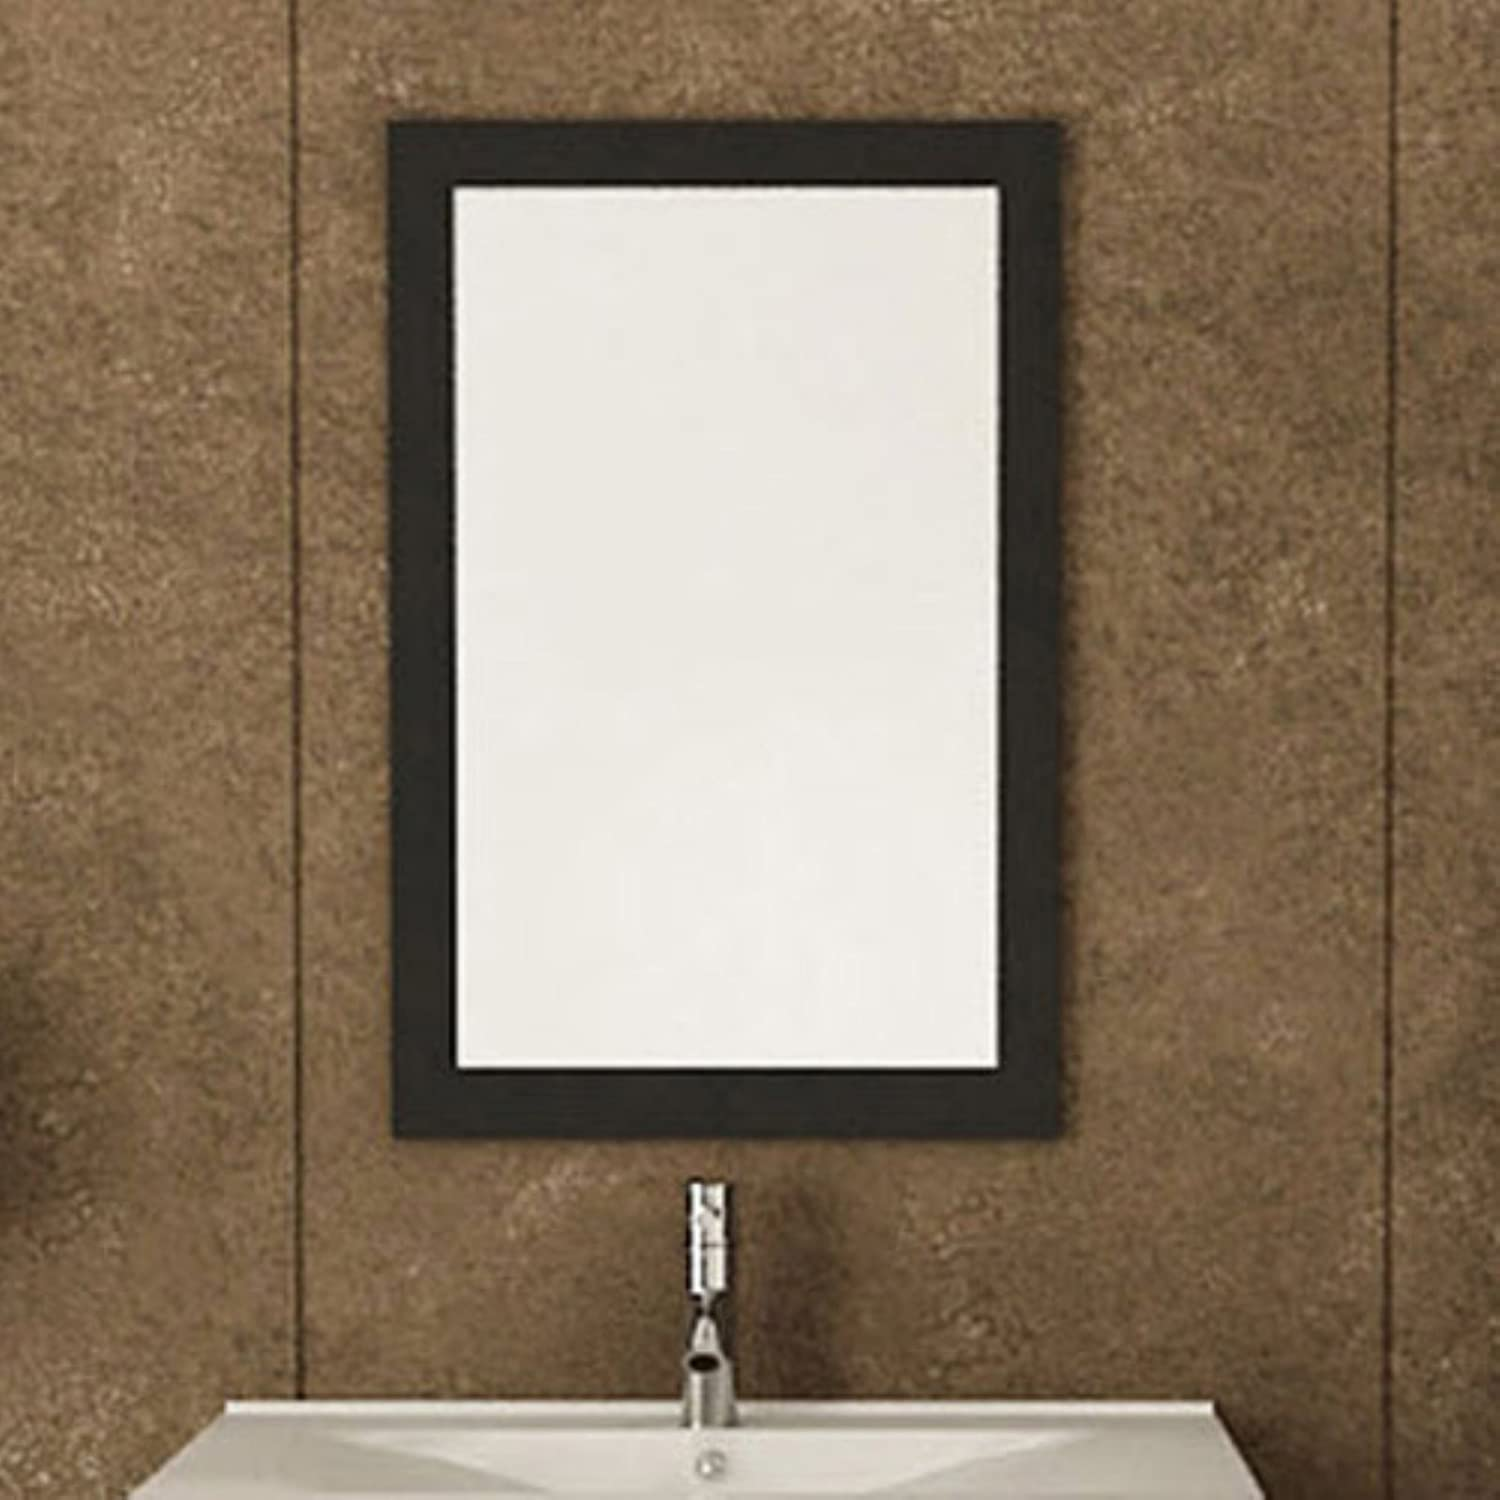 Amazon.com: JWH Living Bathroom Mirror with Solid Wood Frame: Home ...